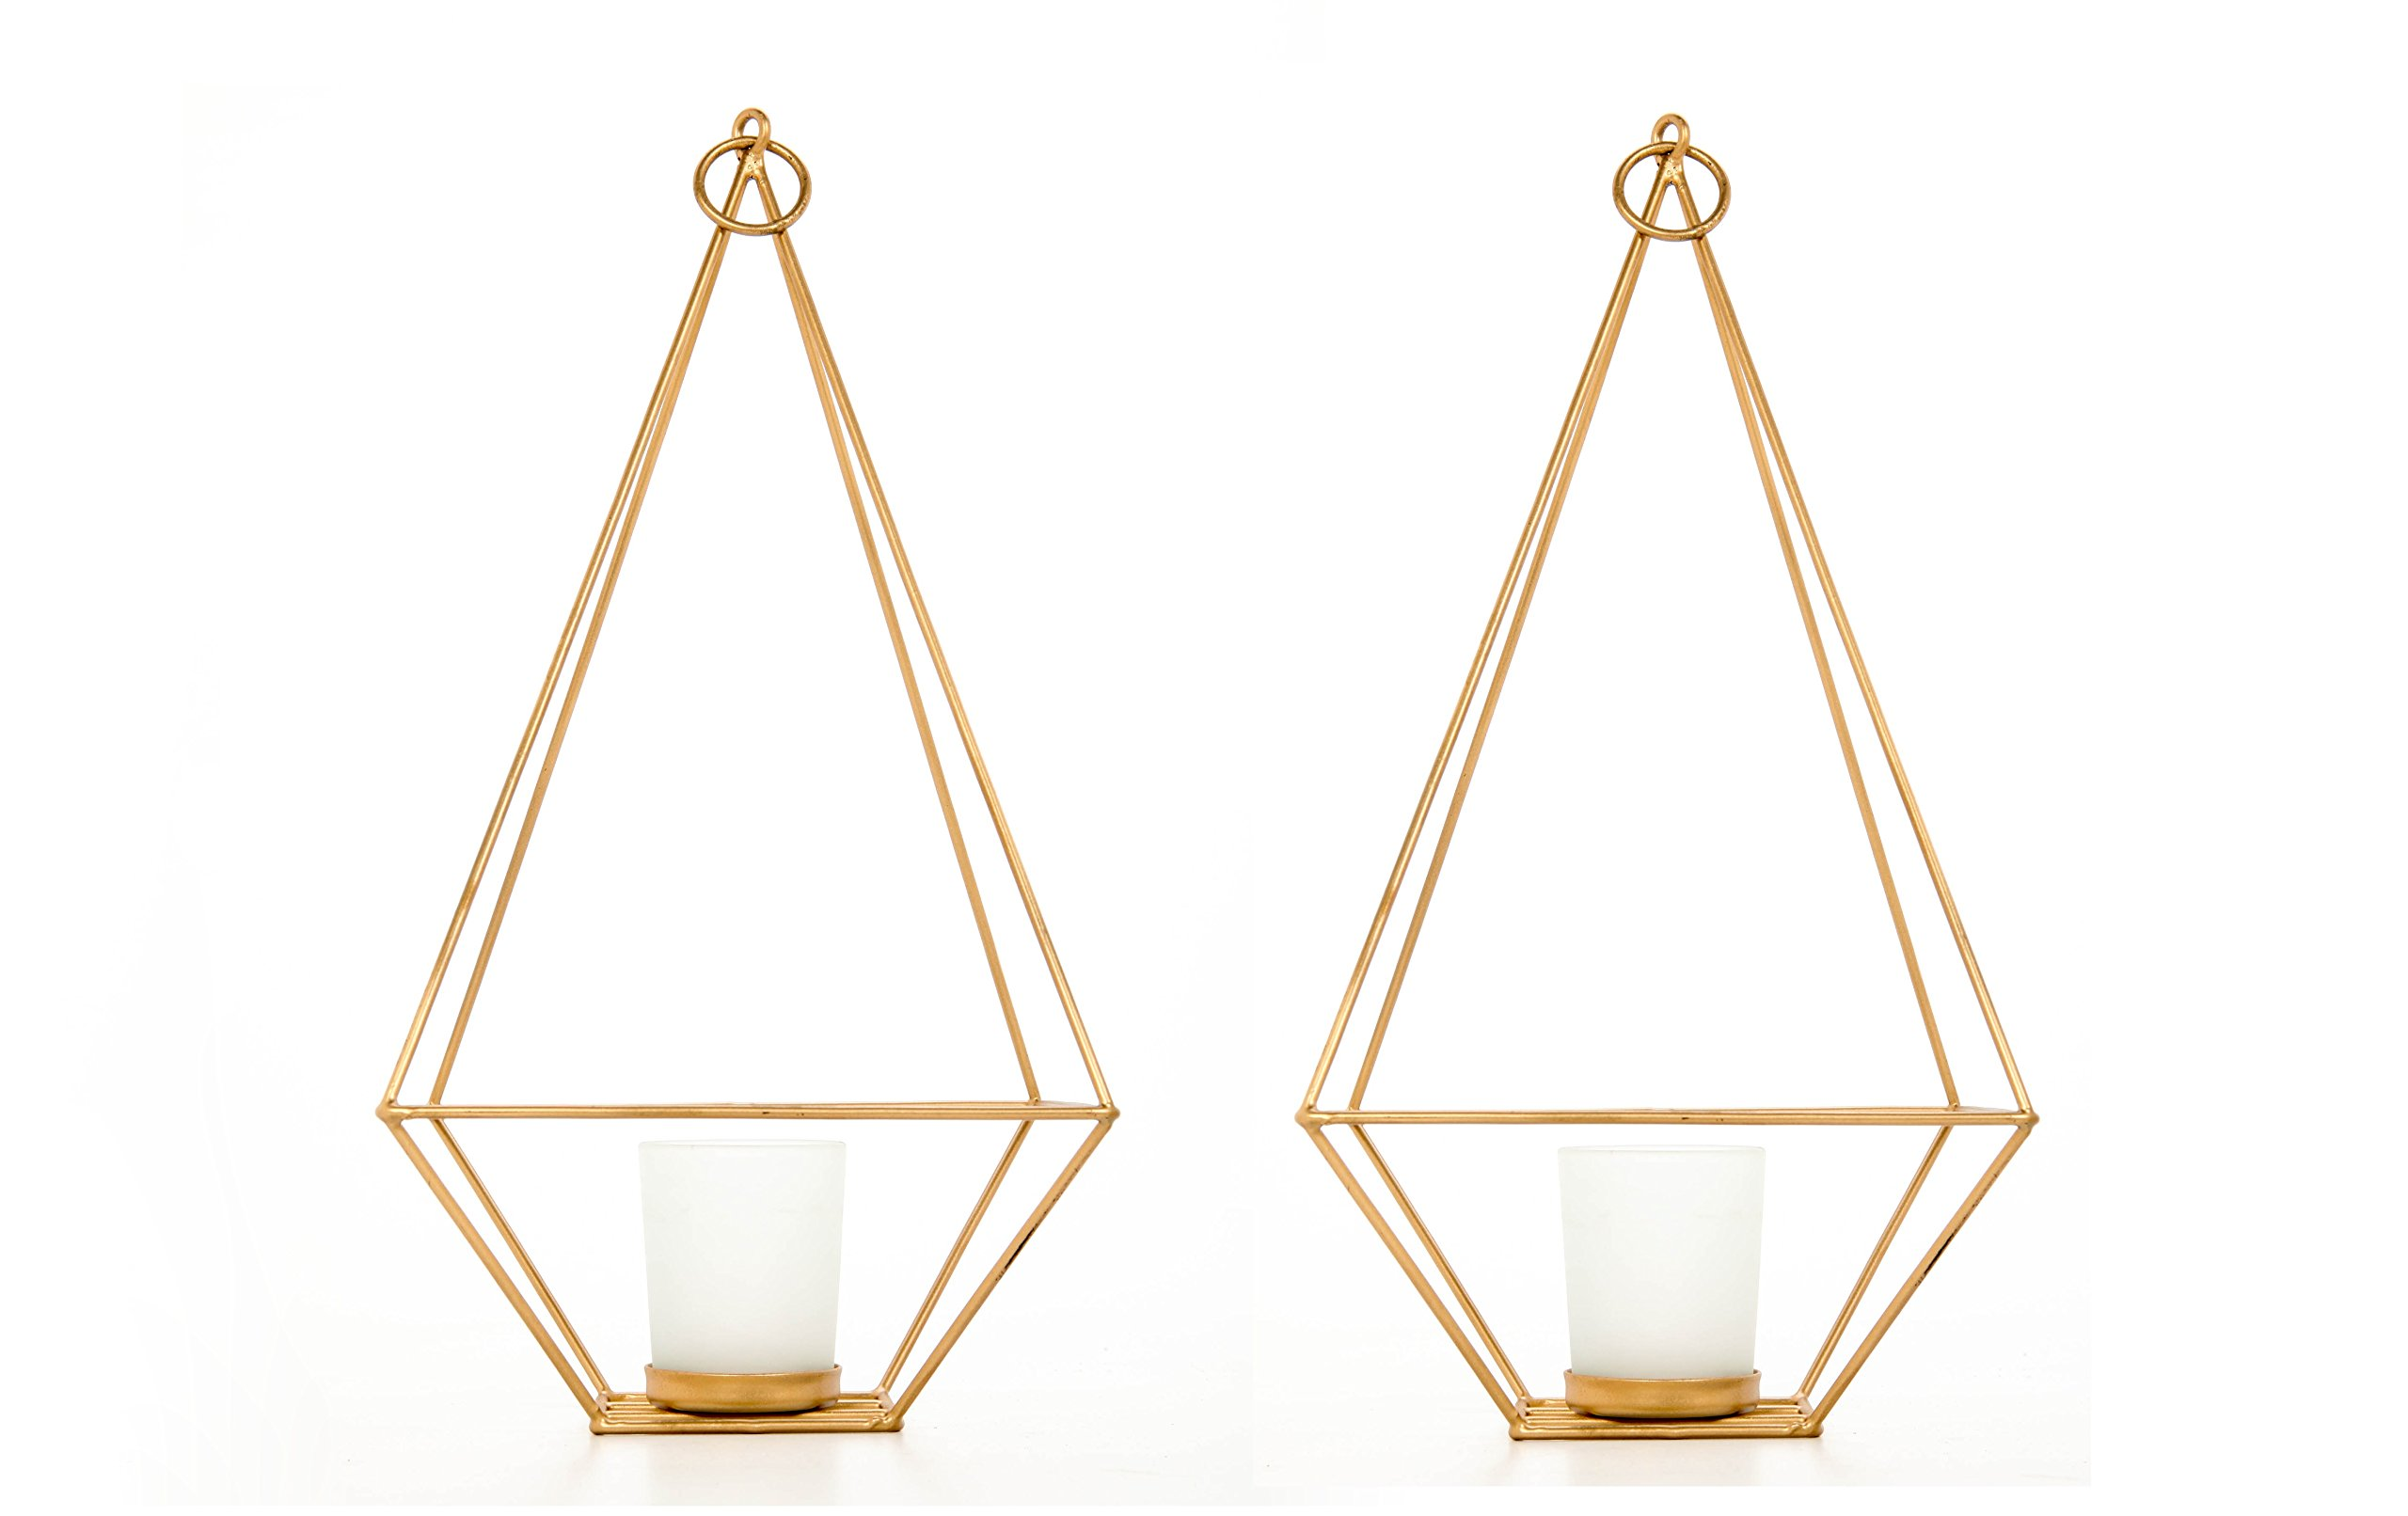 Hosley Set of 2 Gold Finish Tealight/Votive Holder Lantern with Votive Frosted Candle Holder- 11.5'' High. Ideal Gift for Weddings, Special Events, Parties LED Candle Gardens, Spa, Aromatherapy O4